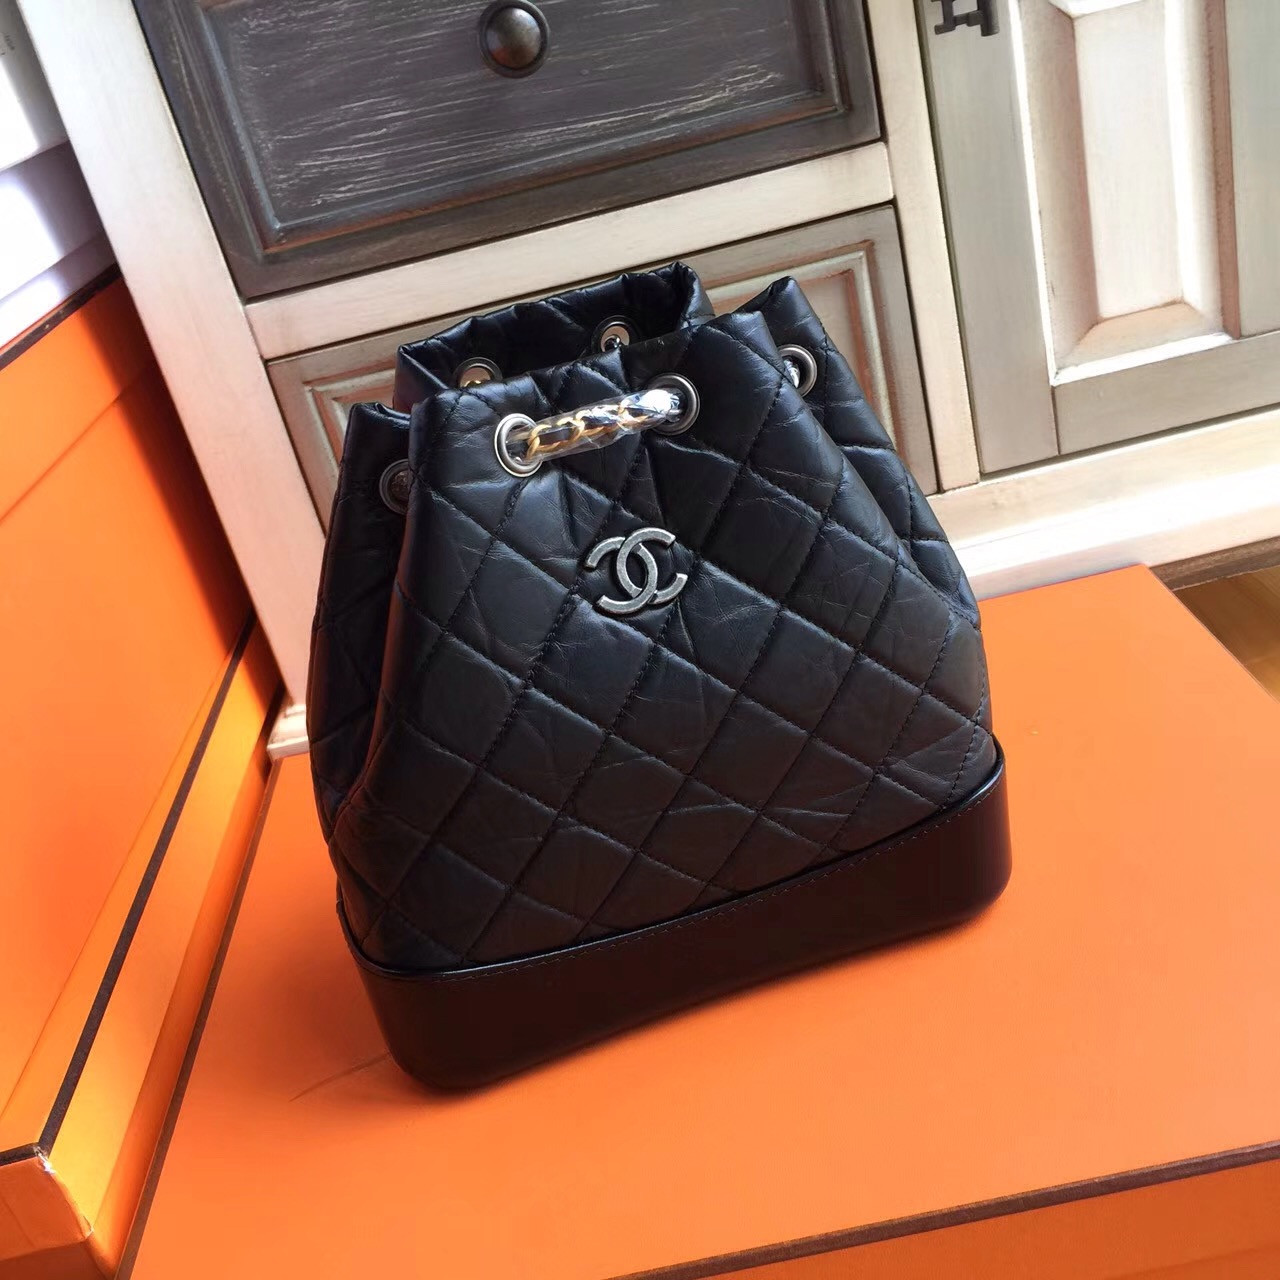 c5c5f0c2f95e Chanel GABRIELLE Backpack Black A94485 - Bella Vita Moda